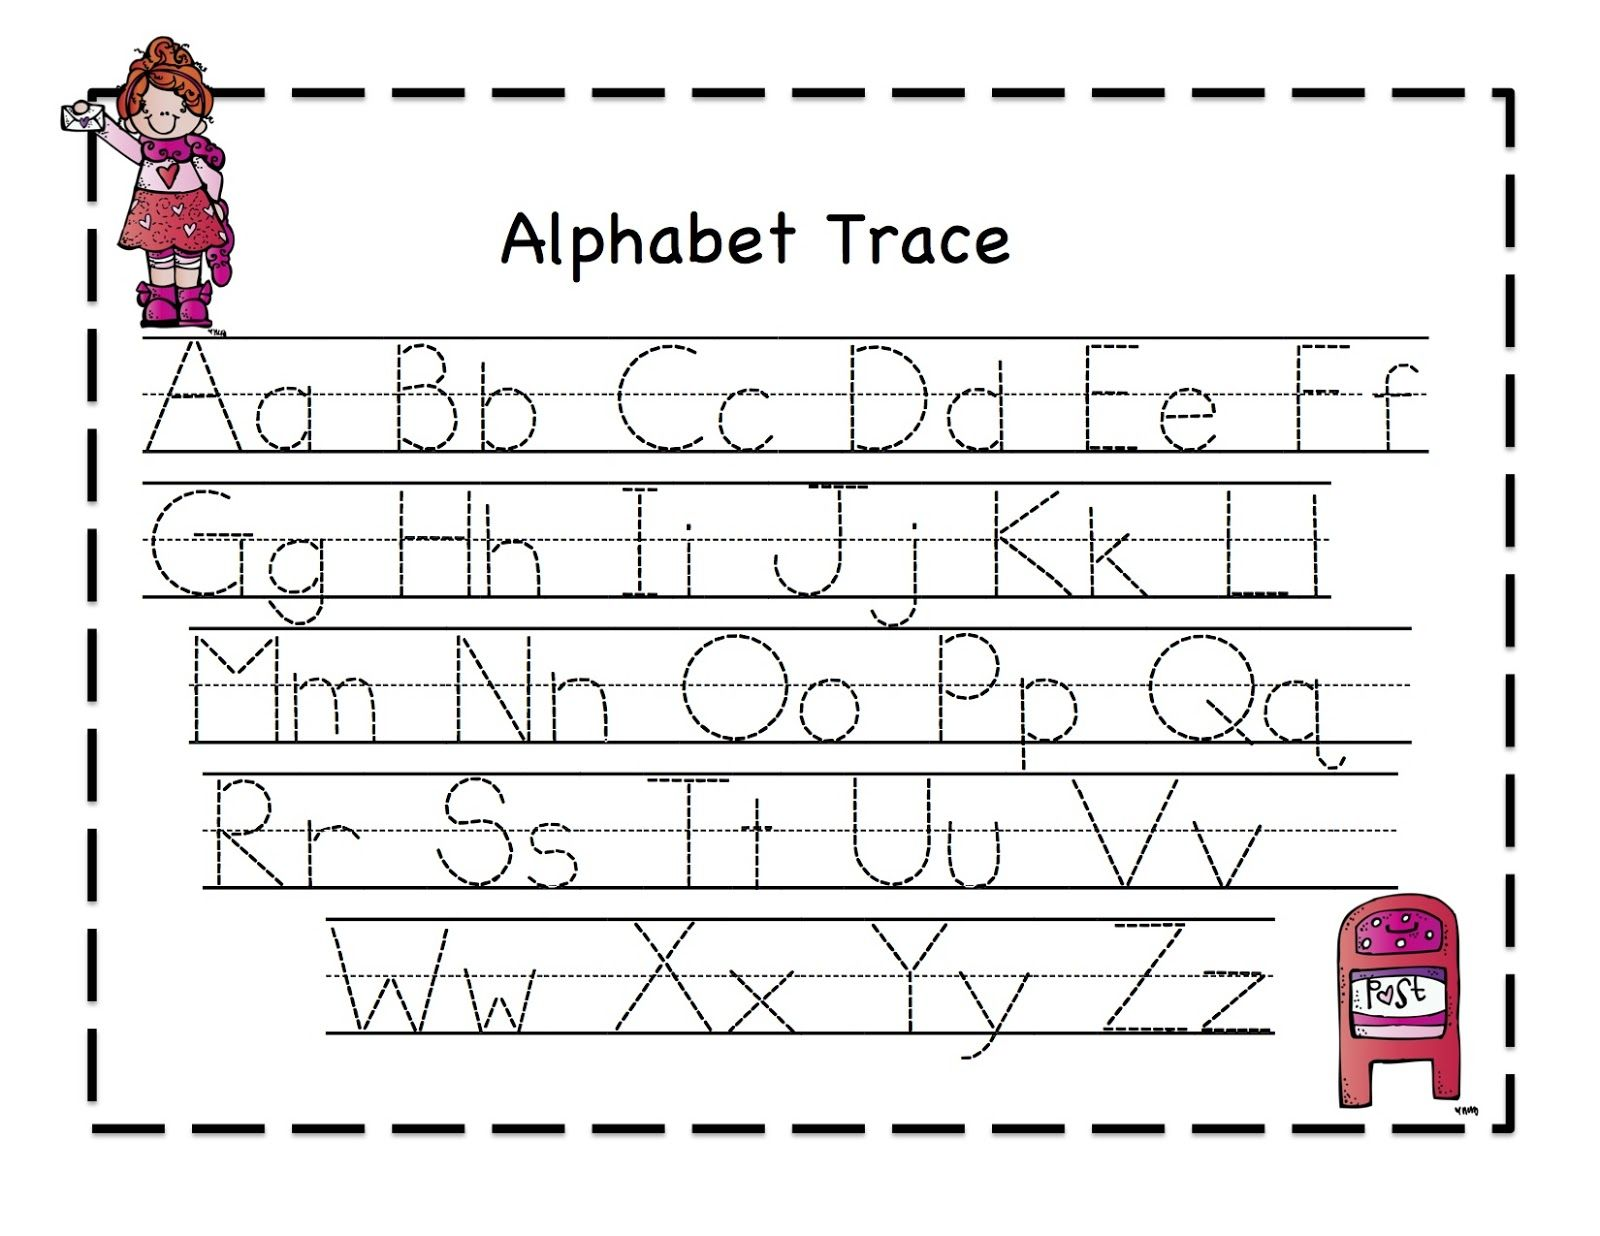 math worksheet : abc tracing sheets for preschool kids  kiddo shelter  alphabet  : Alphabet Worksheet For Kindergarten